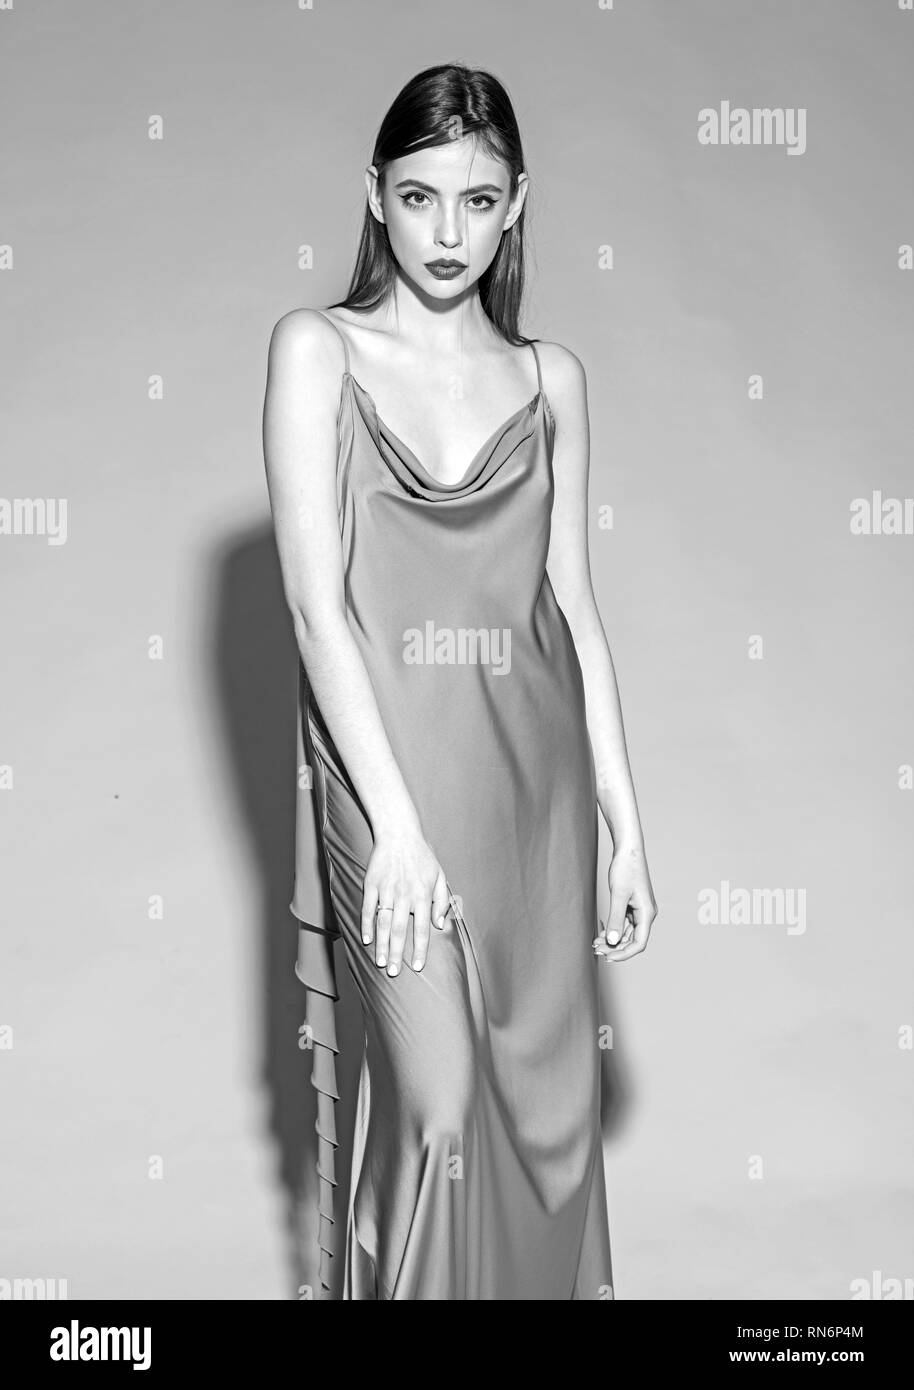 Langes If7y6gvyb Blaues Stockfotosamp; Alamy Kleid Bilder 0POw8nk